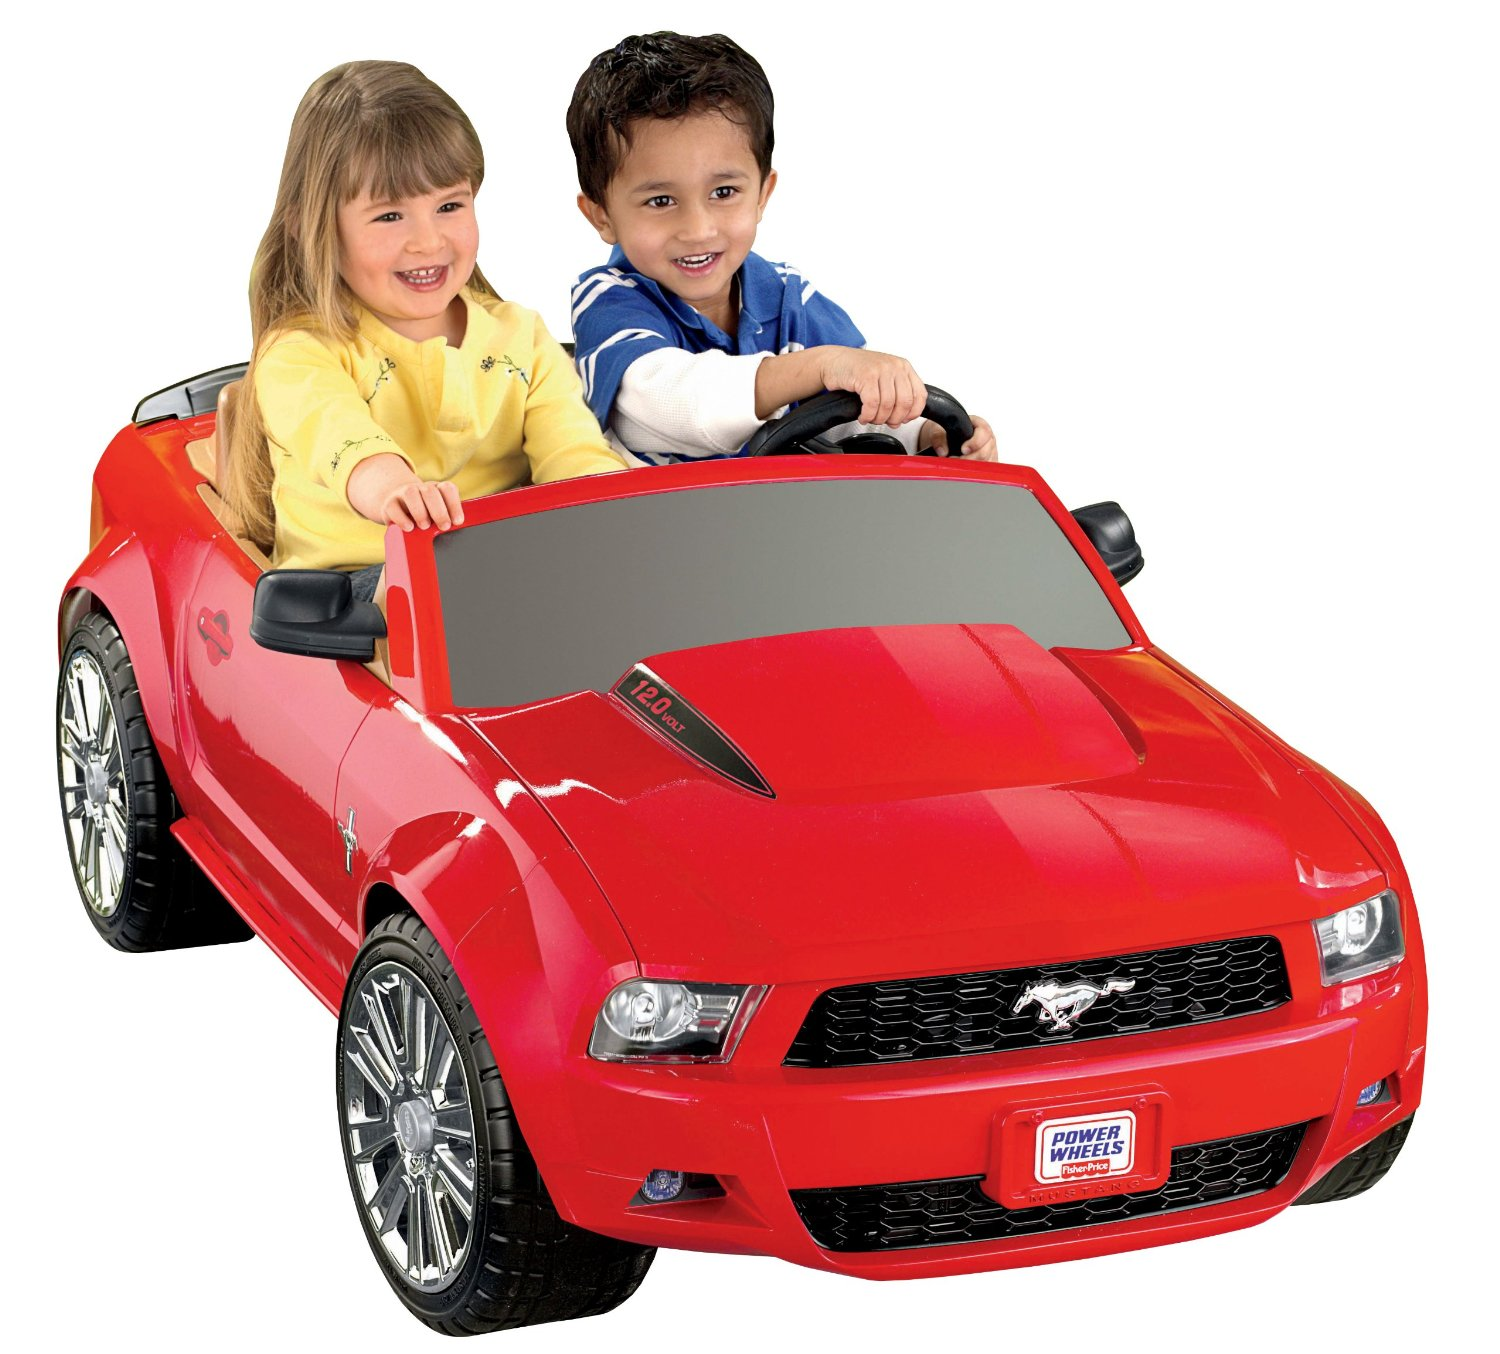 Power Wheels 12V Battery Toy Ride-On - Ford Mustang - Red